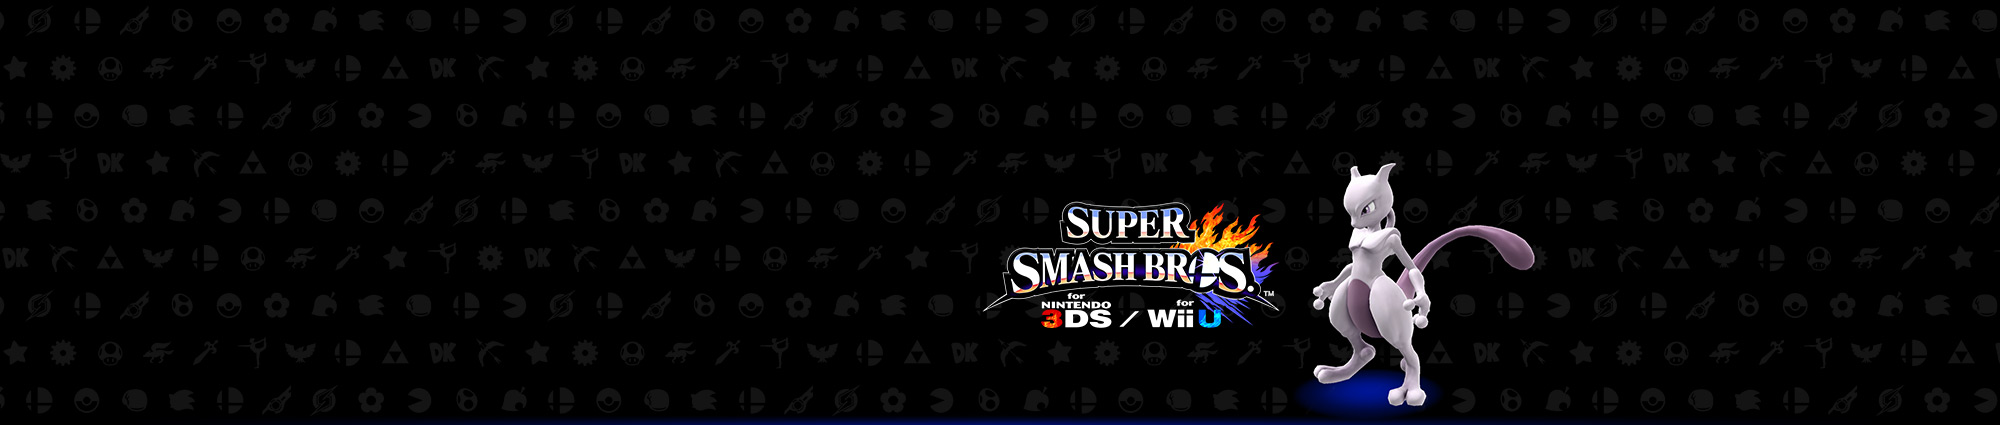 Super Smash Bros. Club Nintendo Promotion